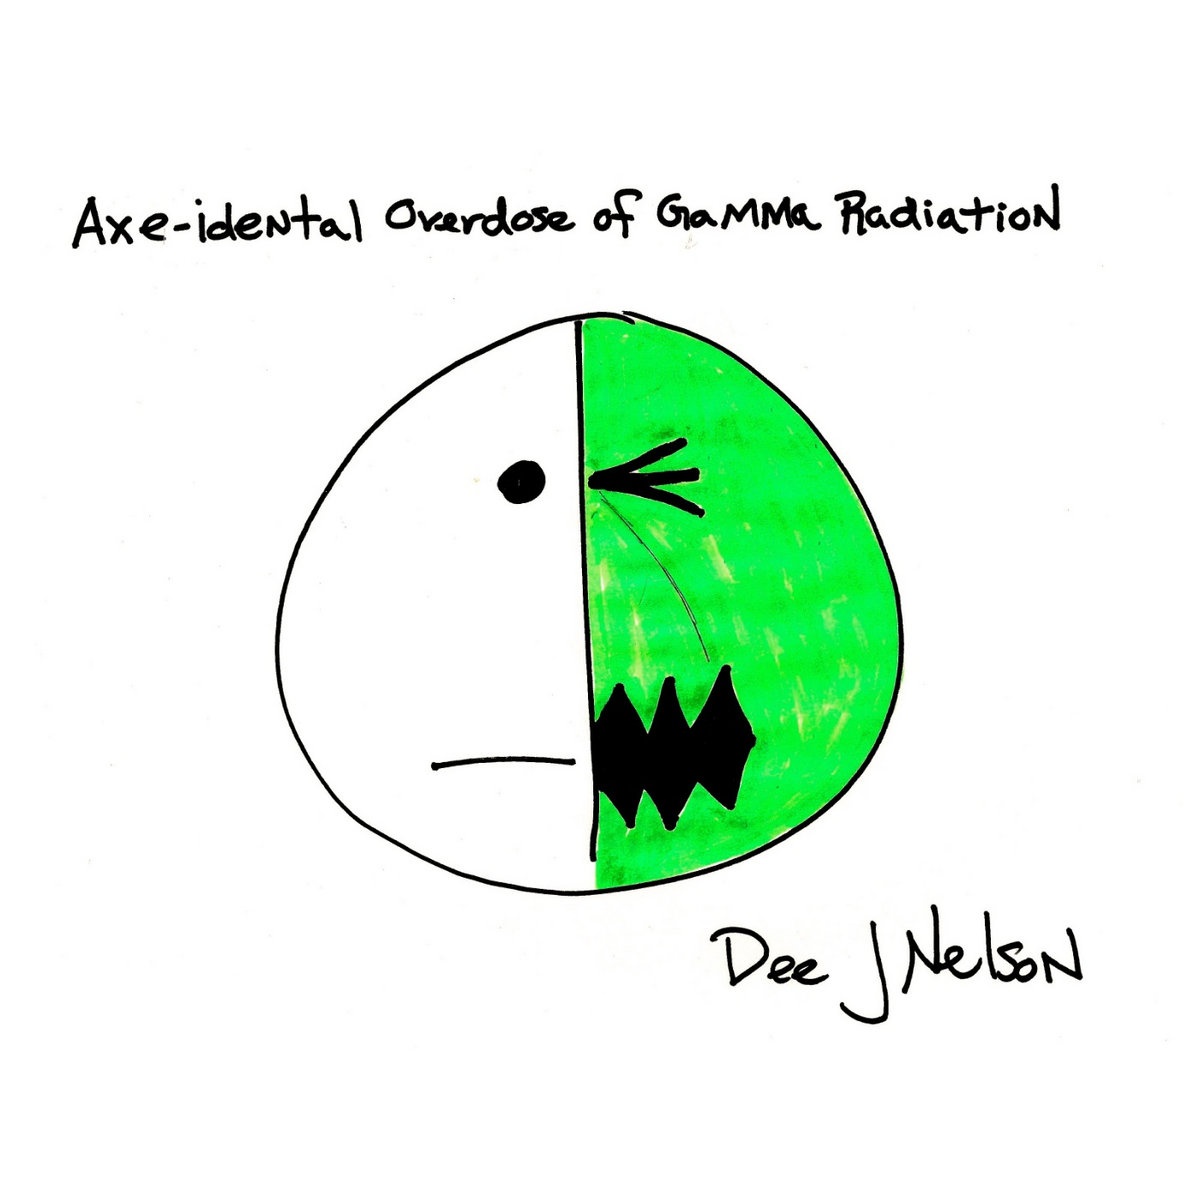 Axe-idental Overdose of Gamma Radiation by Dee J Nelson